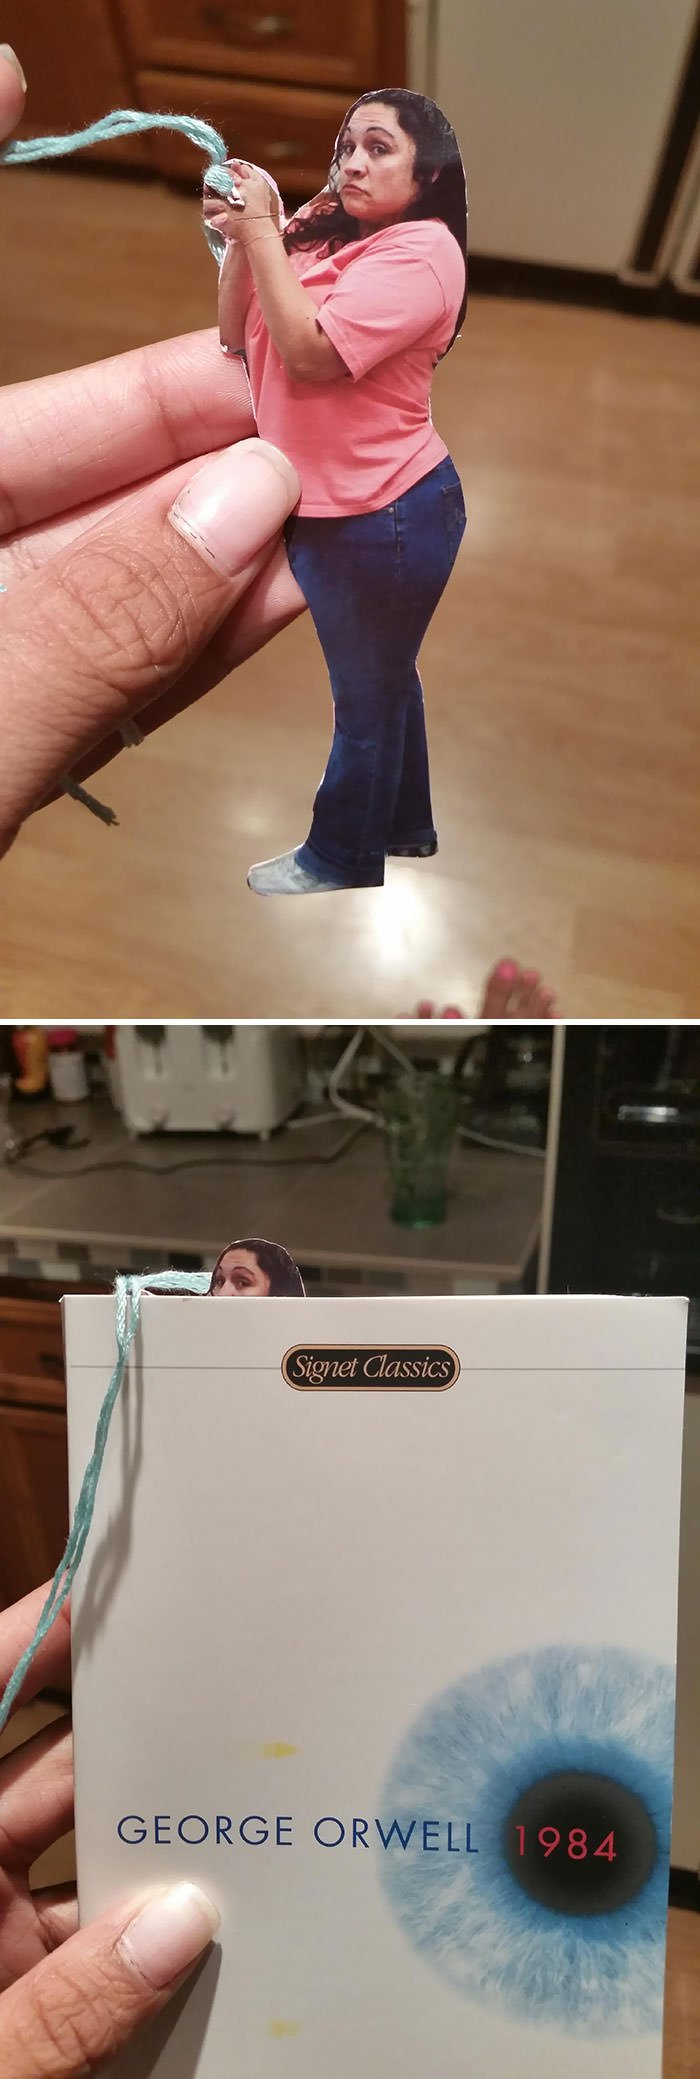 I Asked My Mom For A Cool Bookmark And This Is What She Gave Me (Yes, That Is My Mother)